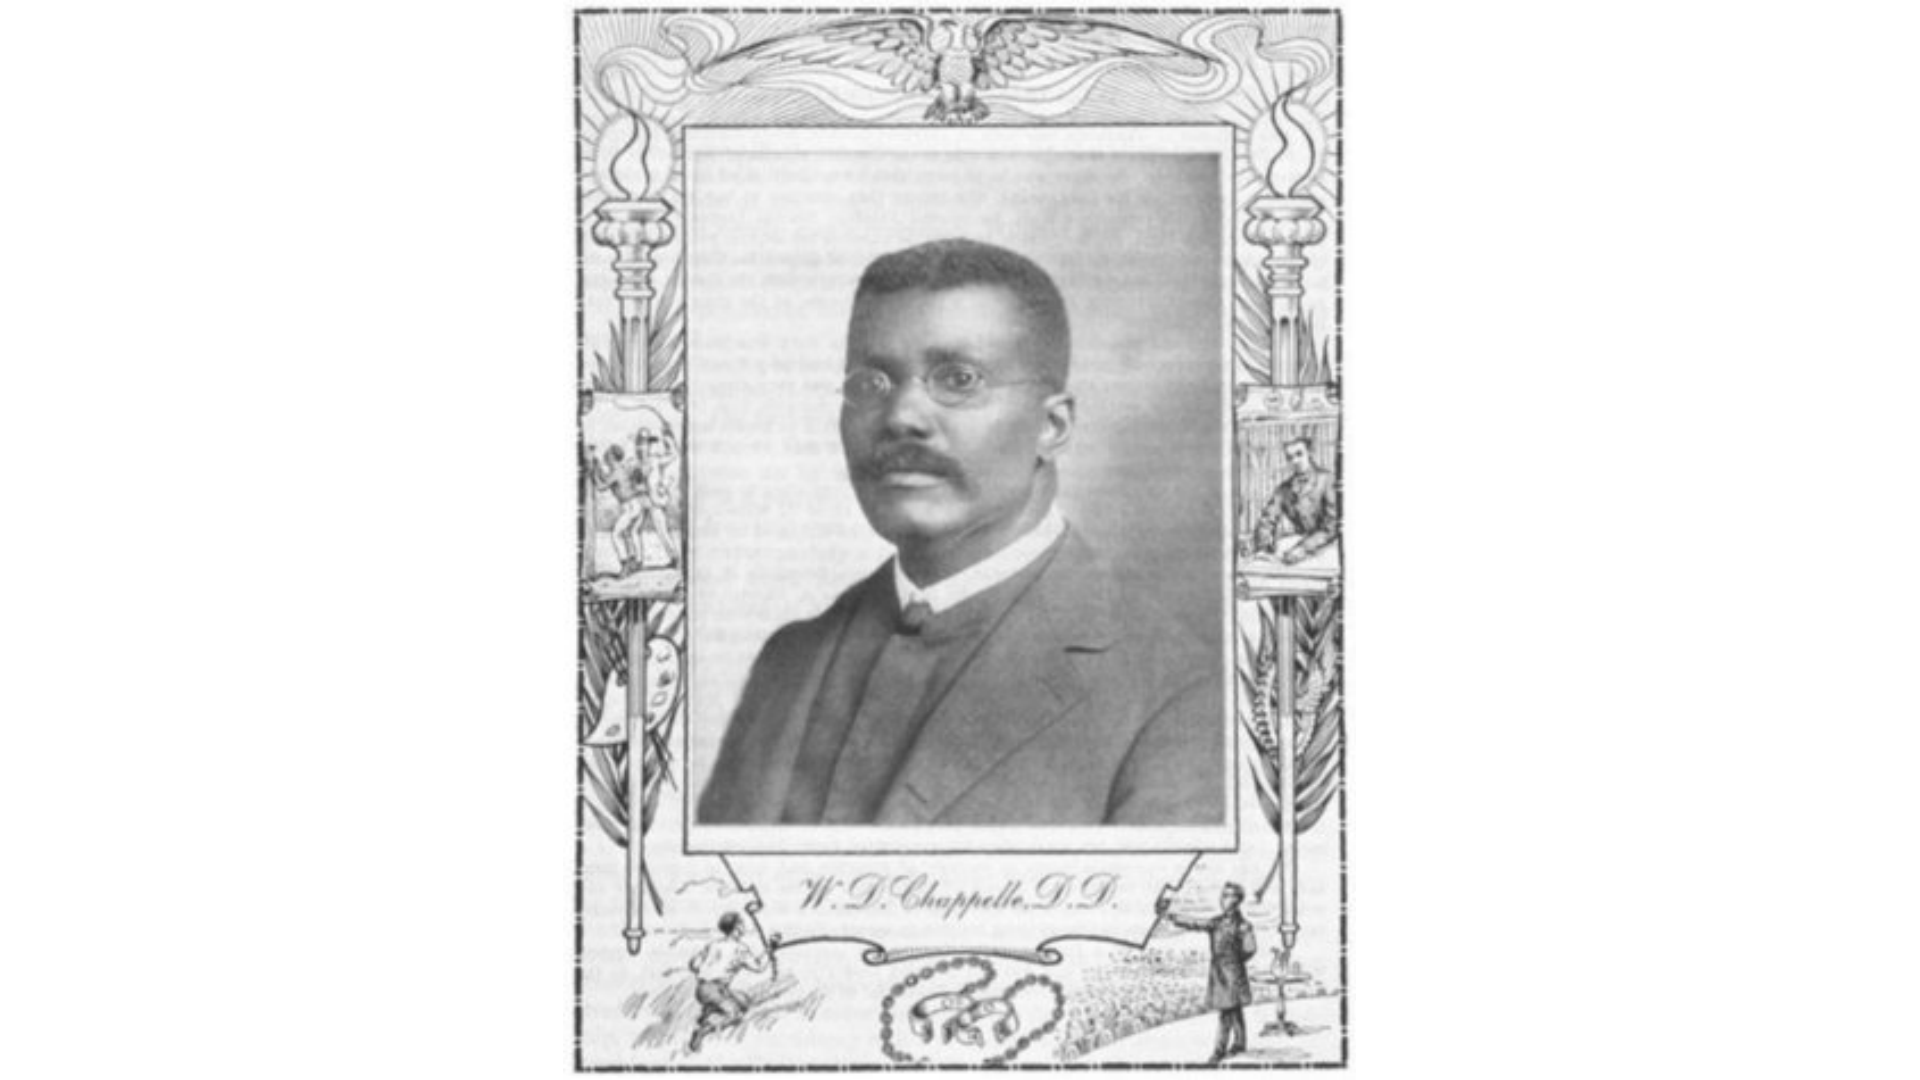 Bishop William David Chappelle, Dave's great grandfather, who lead a black delegation to Woodrow Wilson's White House.